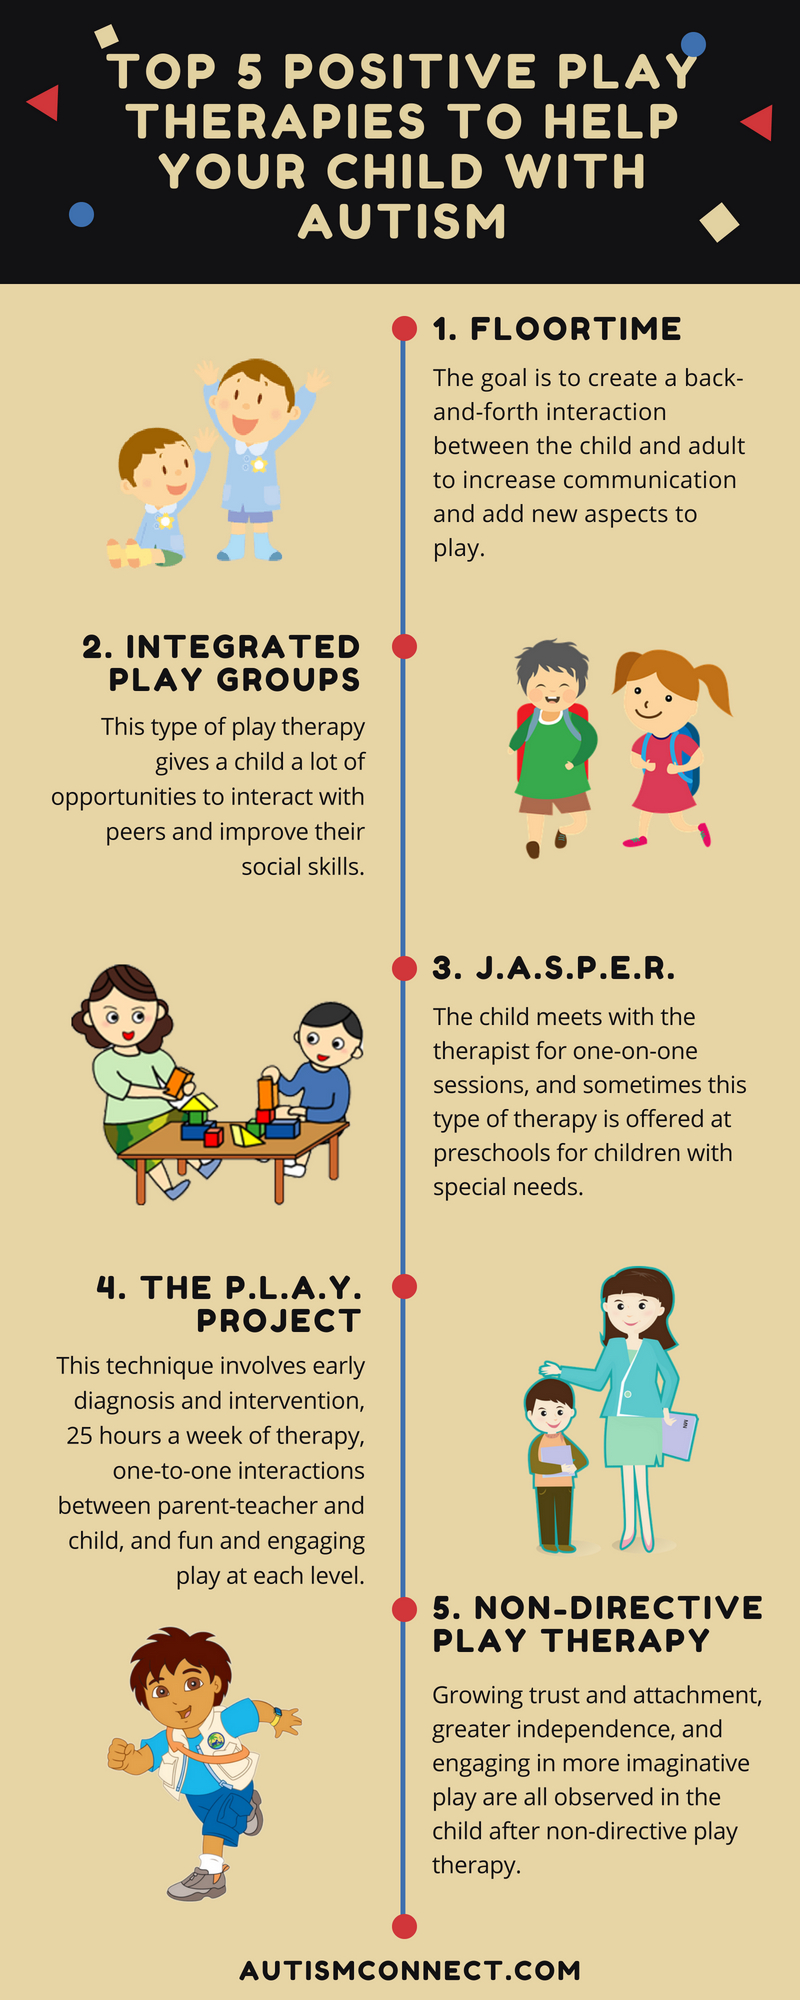 Integrated Play Groups Help Children >> Top 5 Positive Play Therapies To Help Your Child With Autism